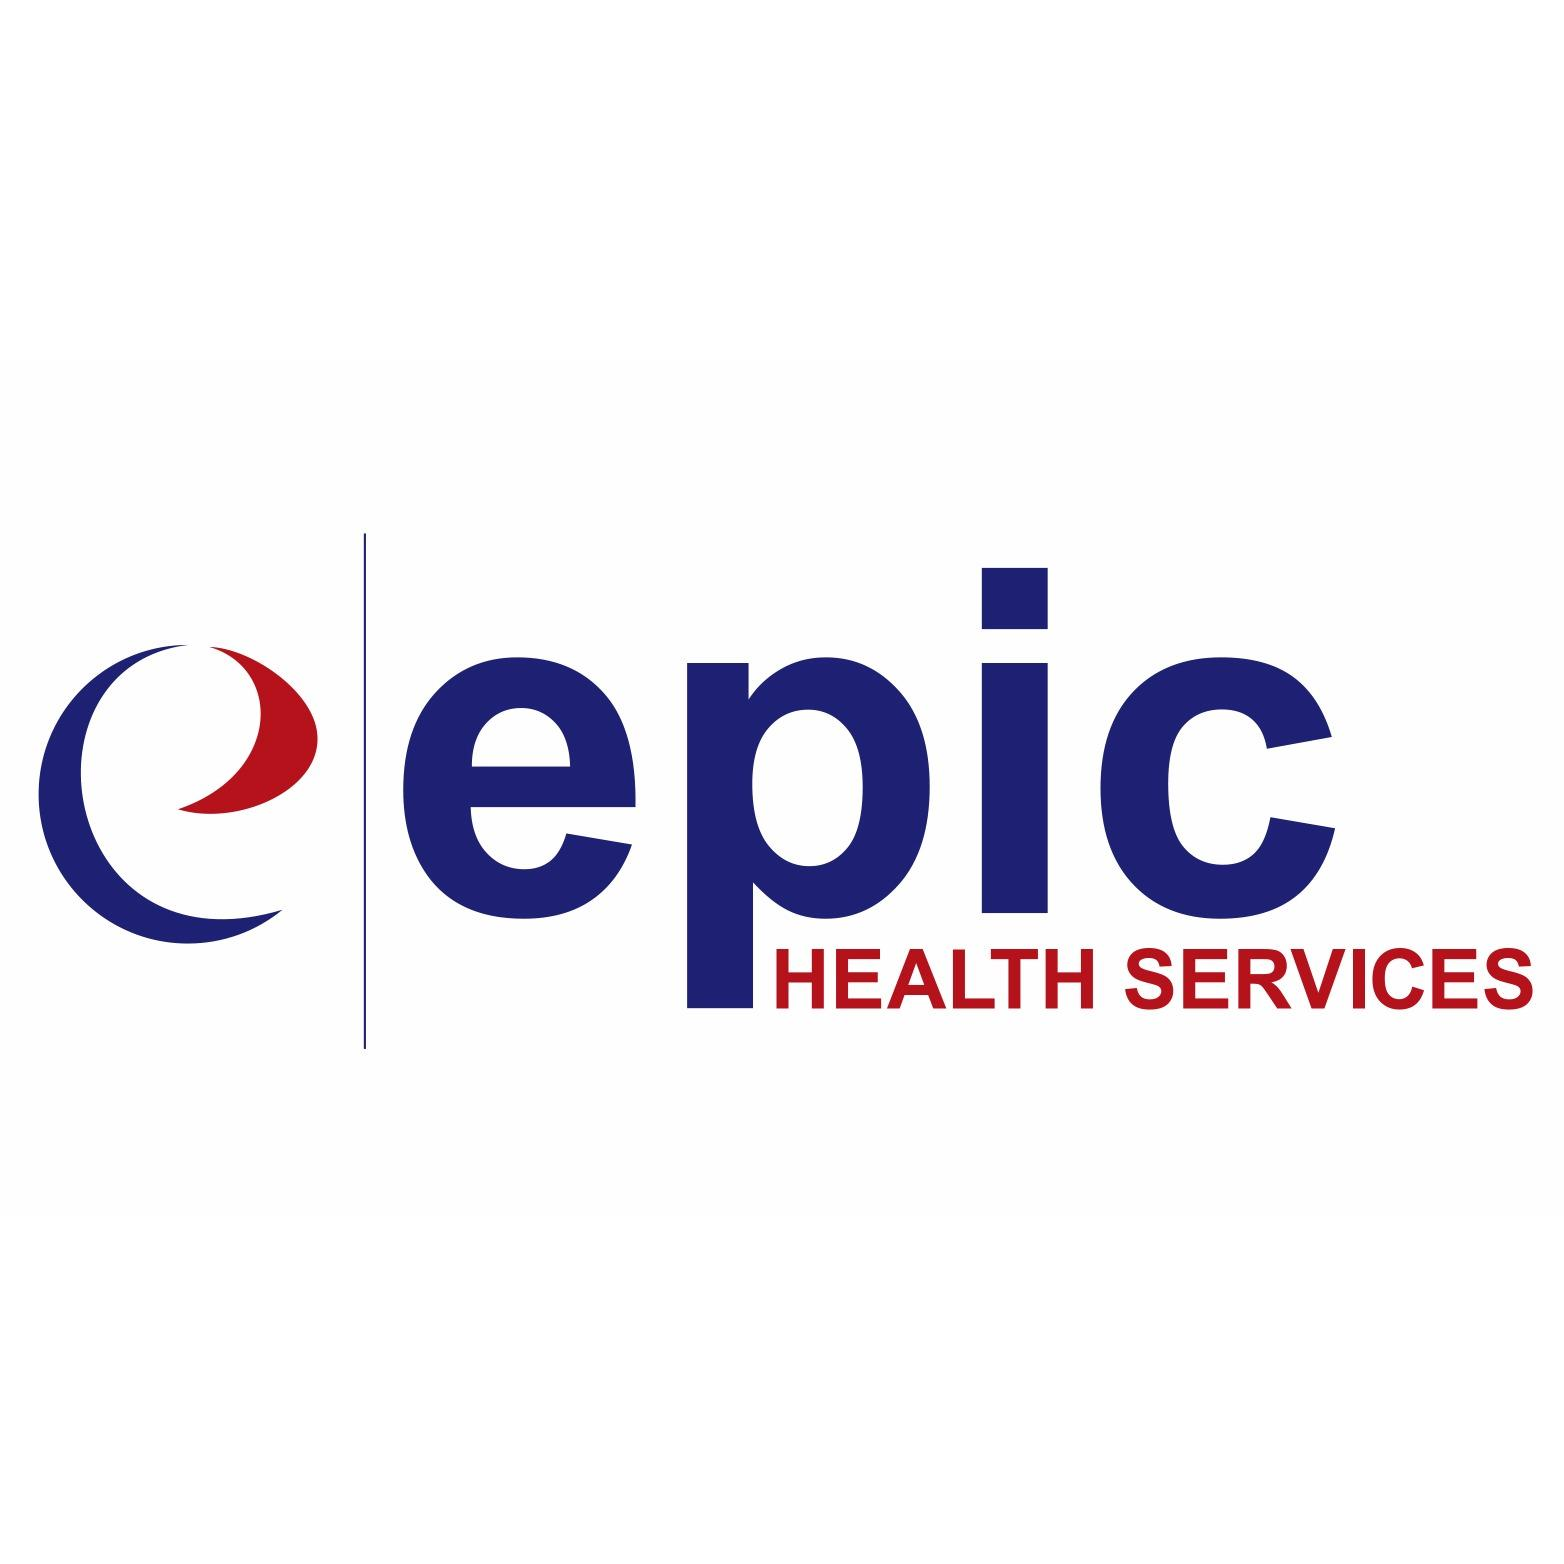 Epic Health Services - Clark, NJ 07066 - (973)510-0120 | ShowMeLocal.com